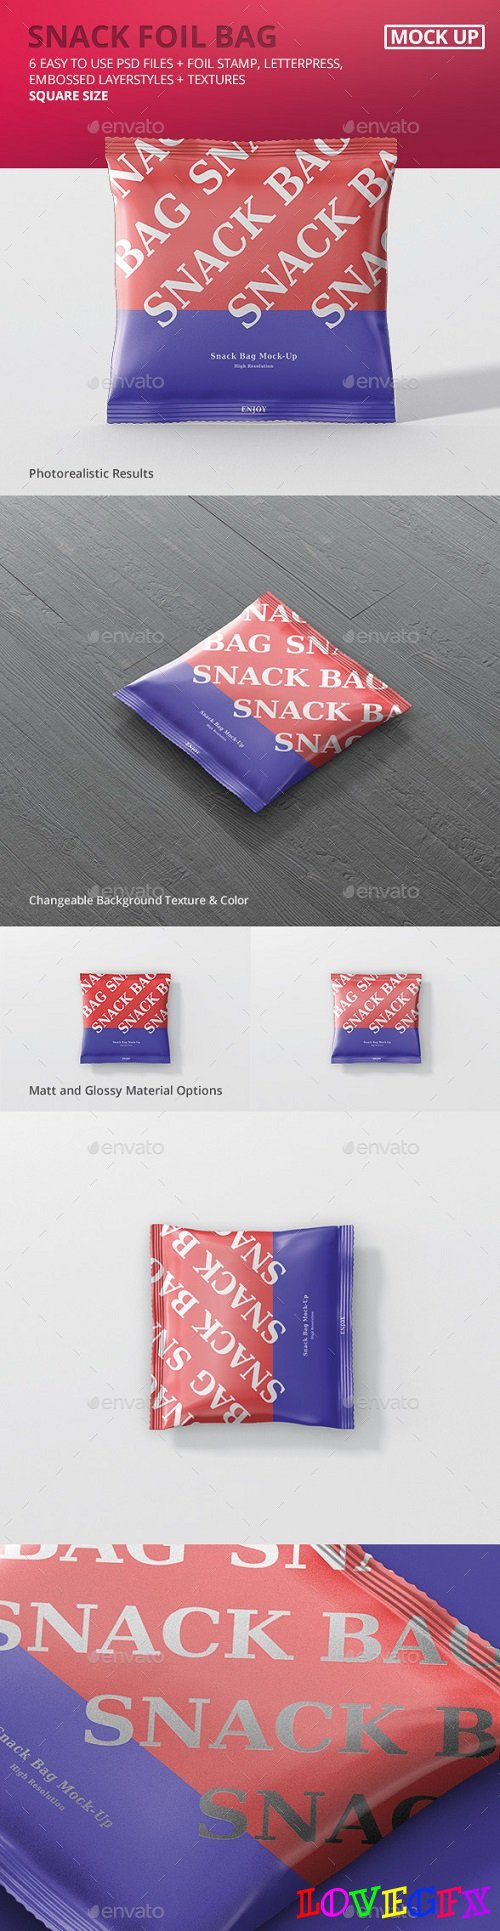 Snack Foil Bag Mockup - Square Size - 20246782